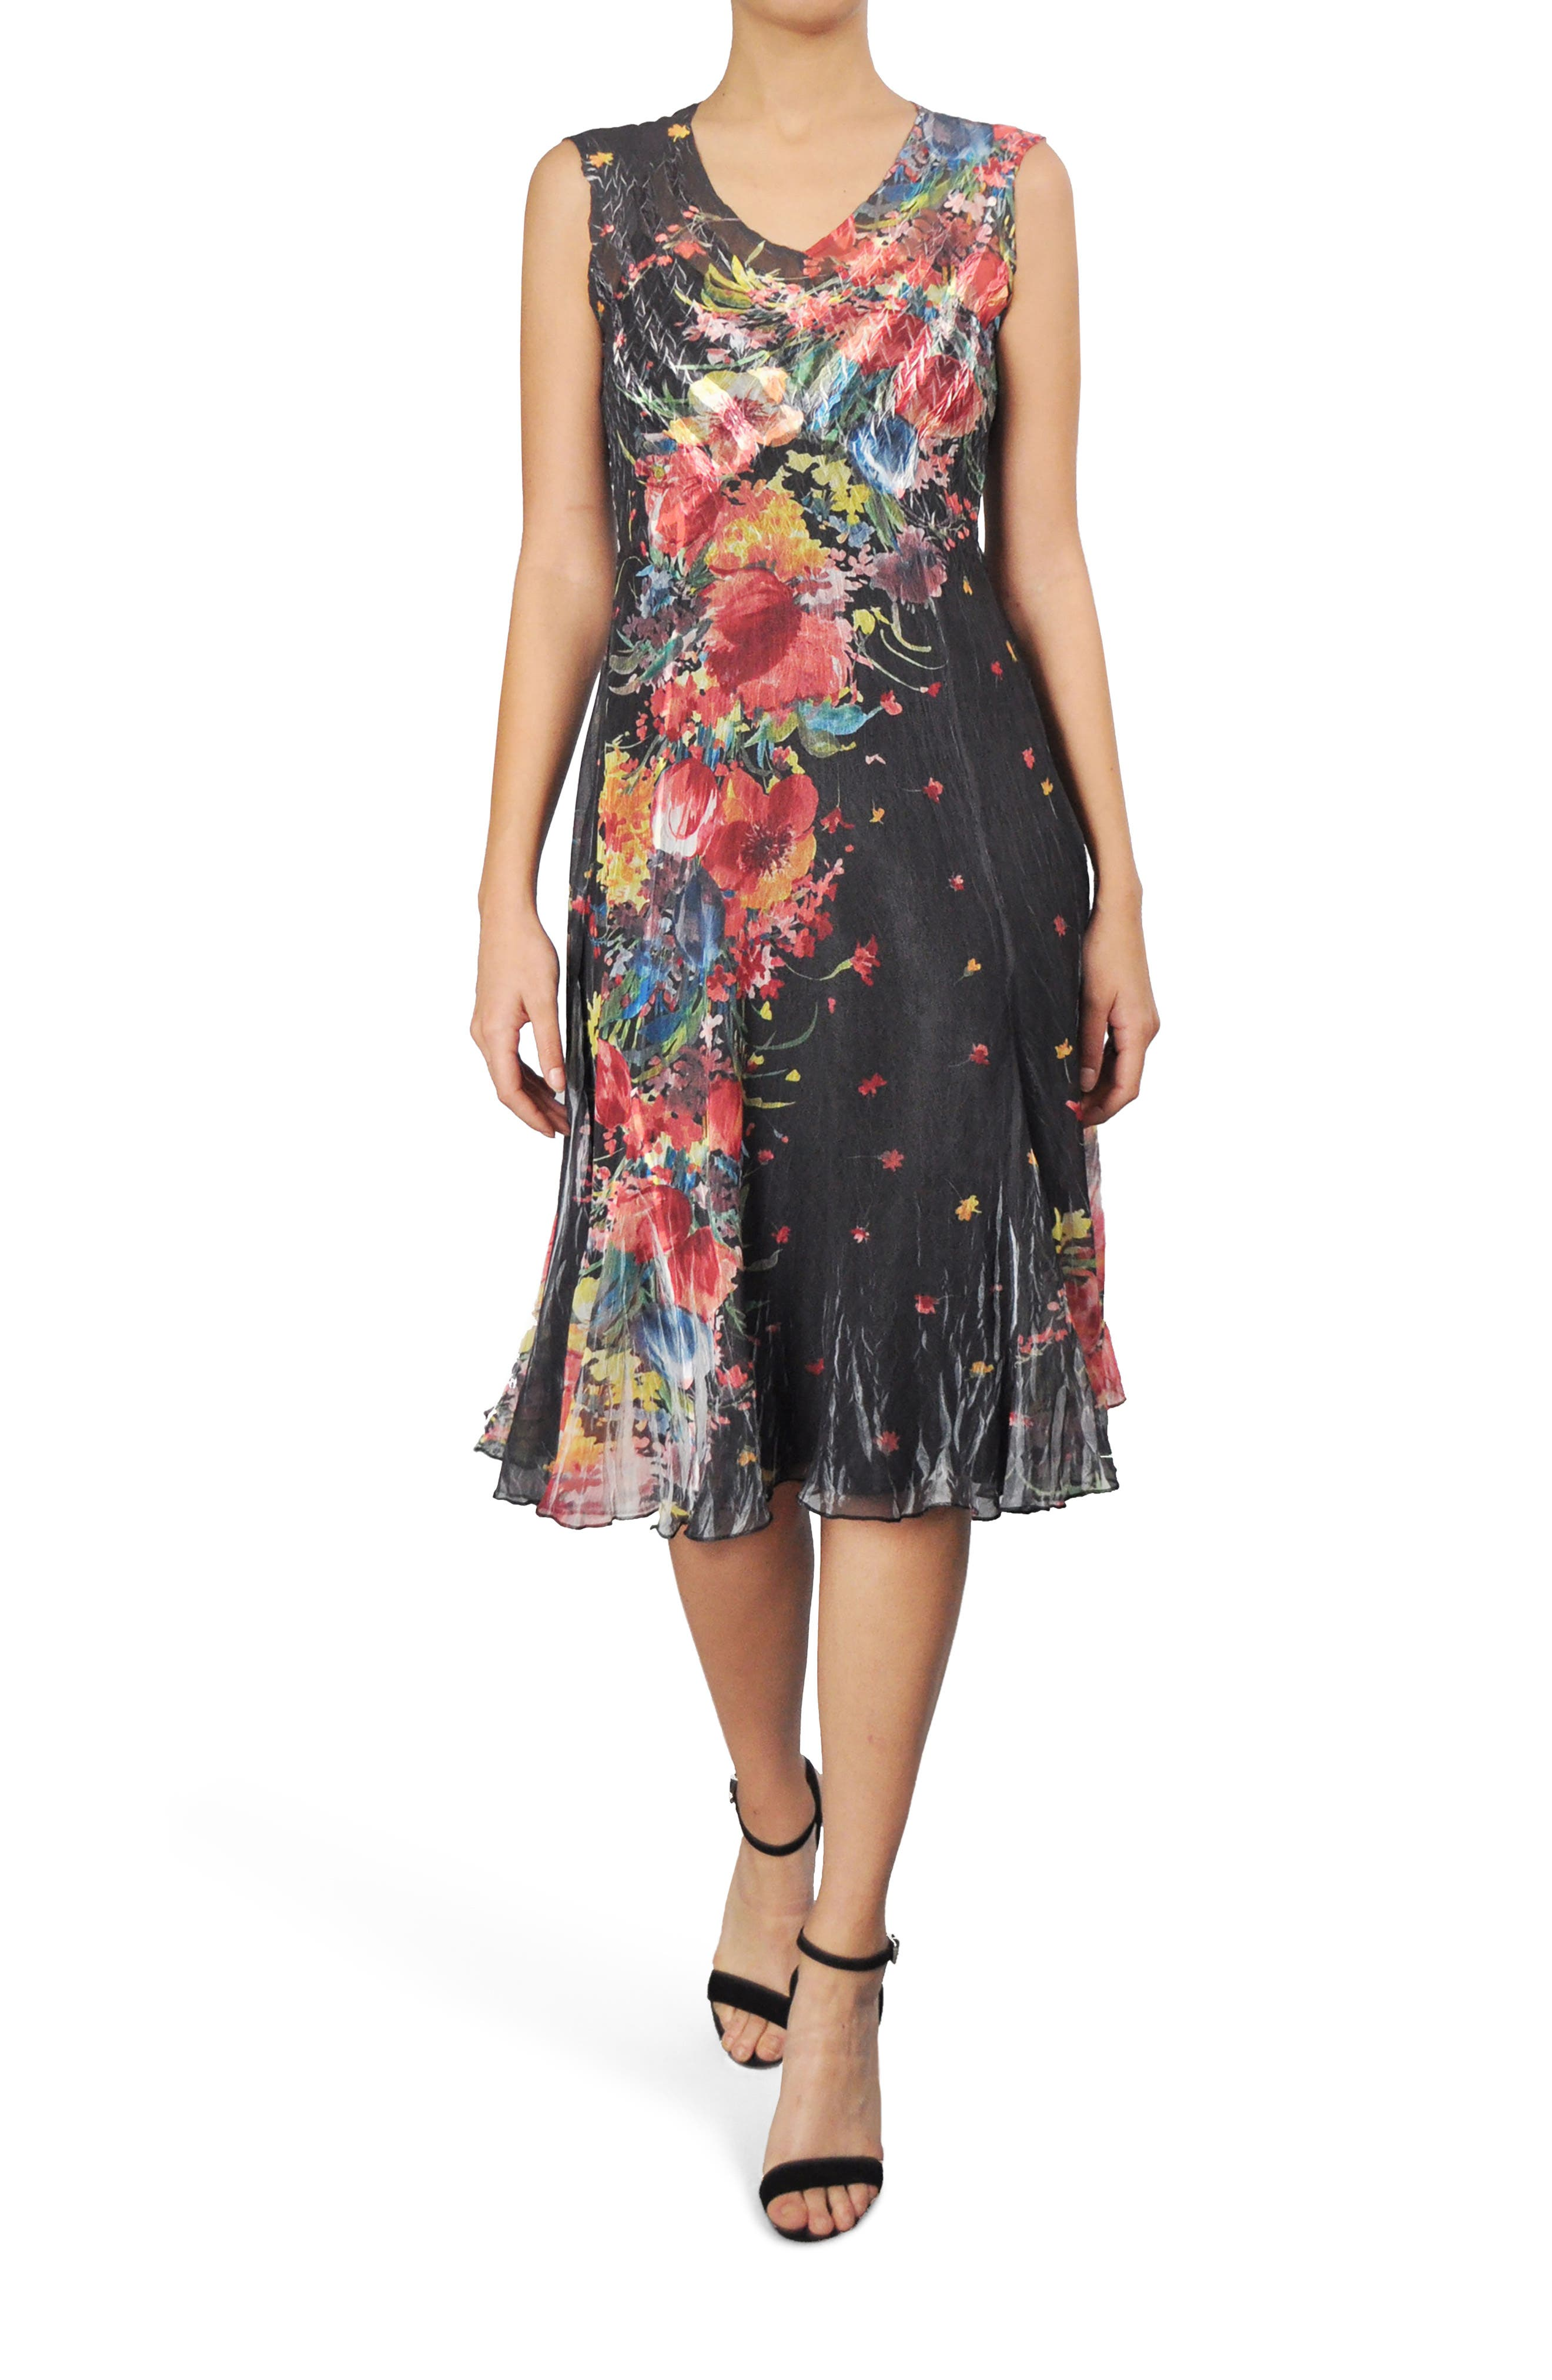 Main Image - Komarov Floral Chiffon A-Line Dress (Regular & Petite)